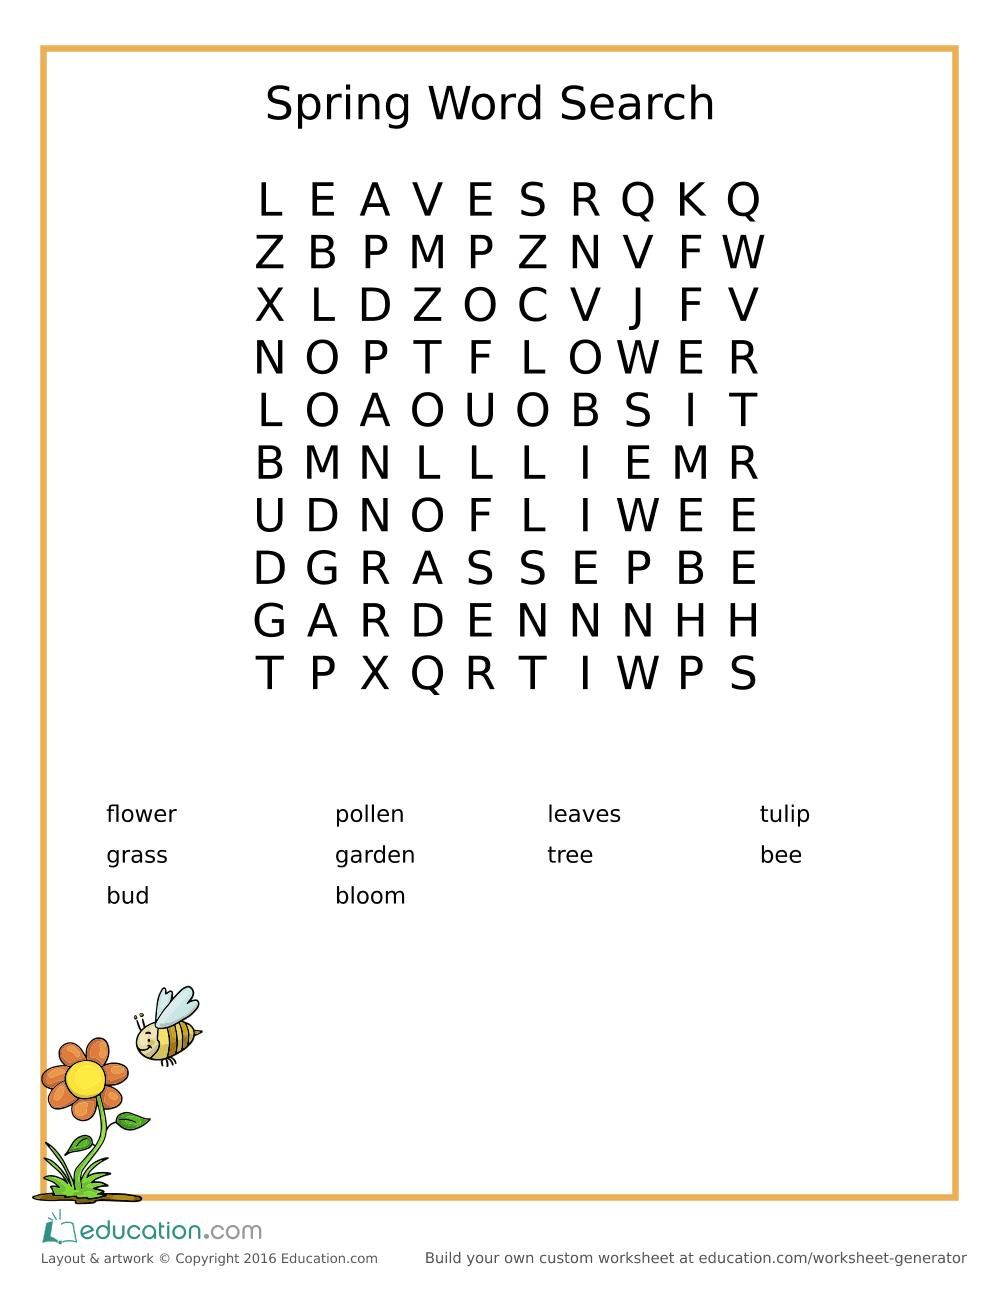 Free Printable Spring Word Search For Kids With Images Spring